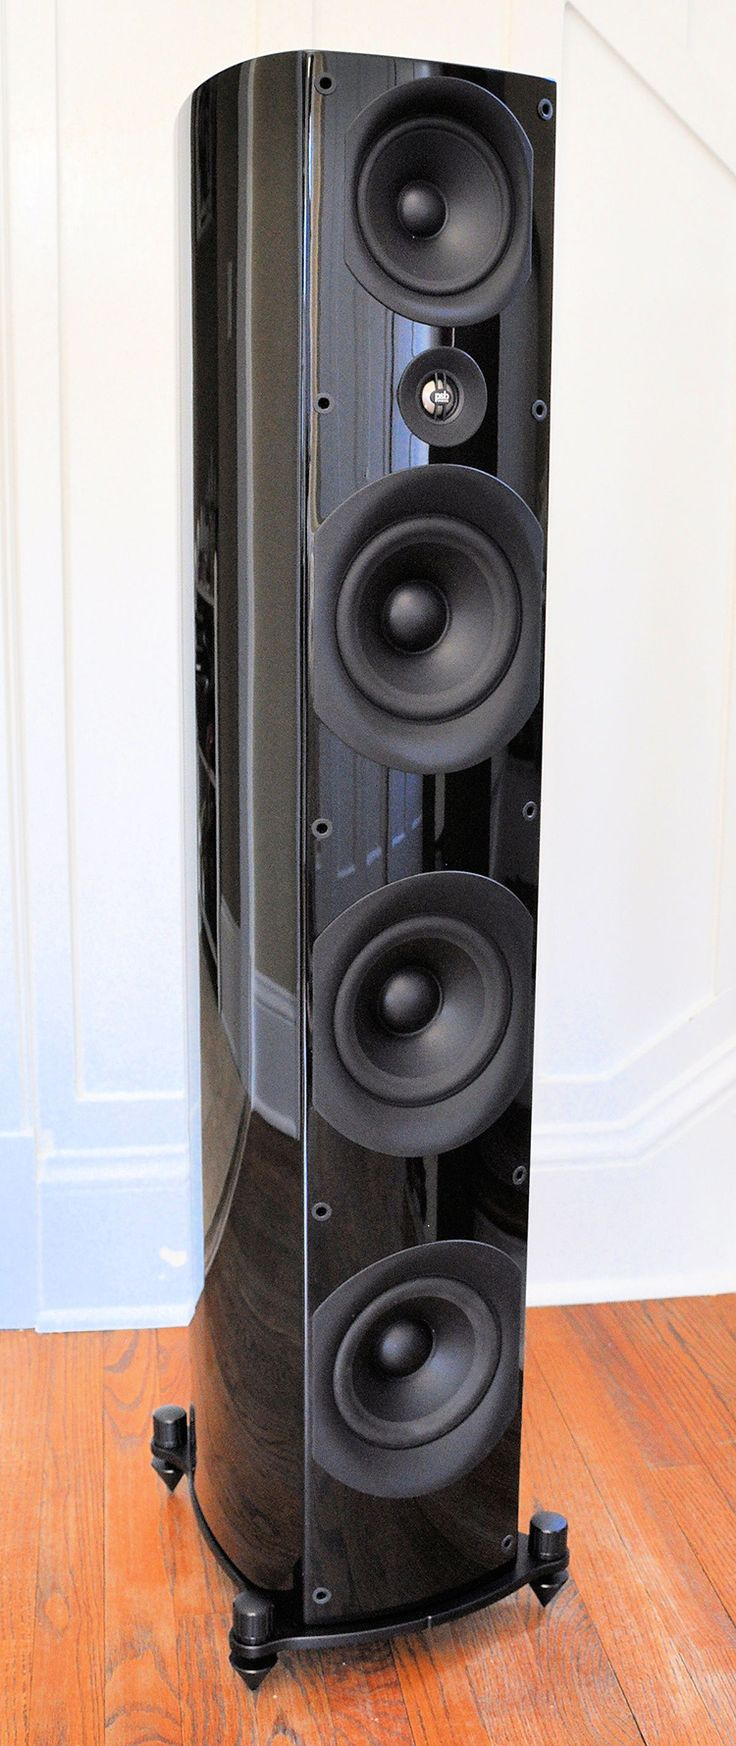 Skema box speaker woofer search results woodworking project ideas - Psb Imagine T3 Floorstanding Speakers